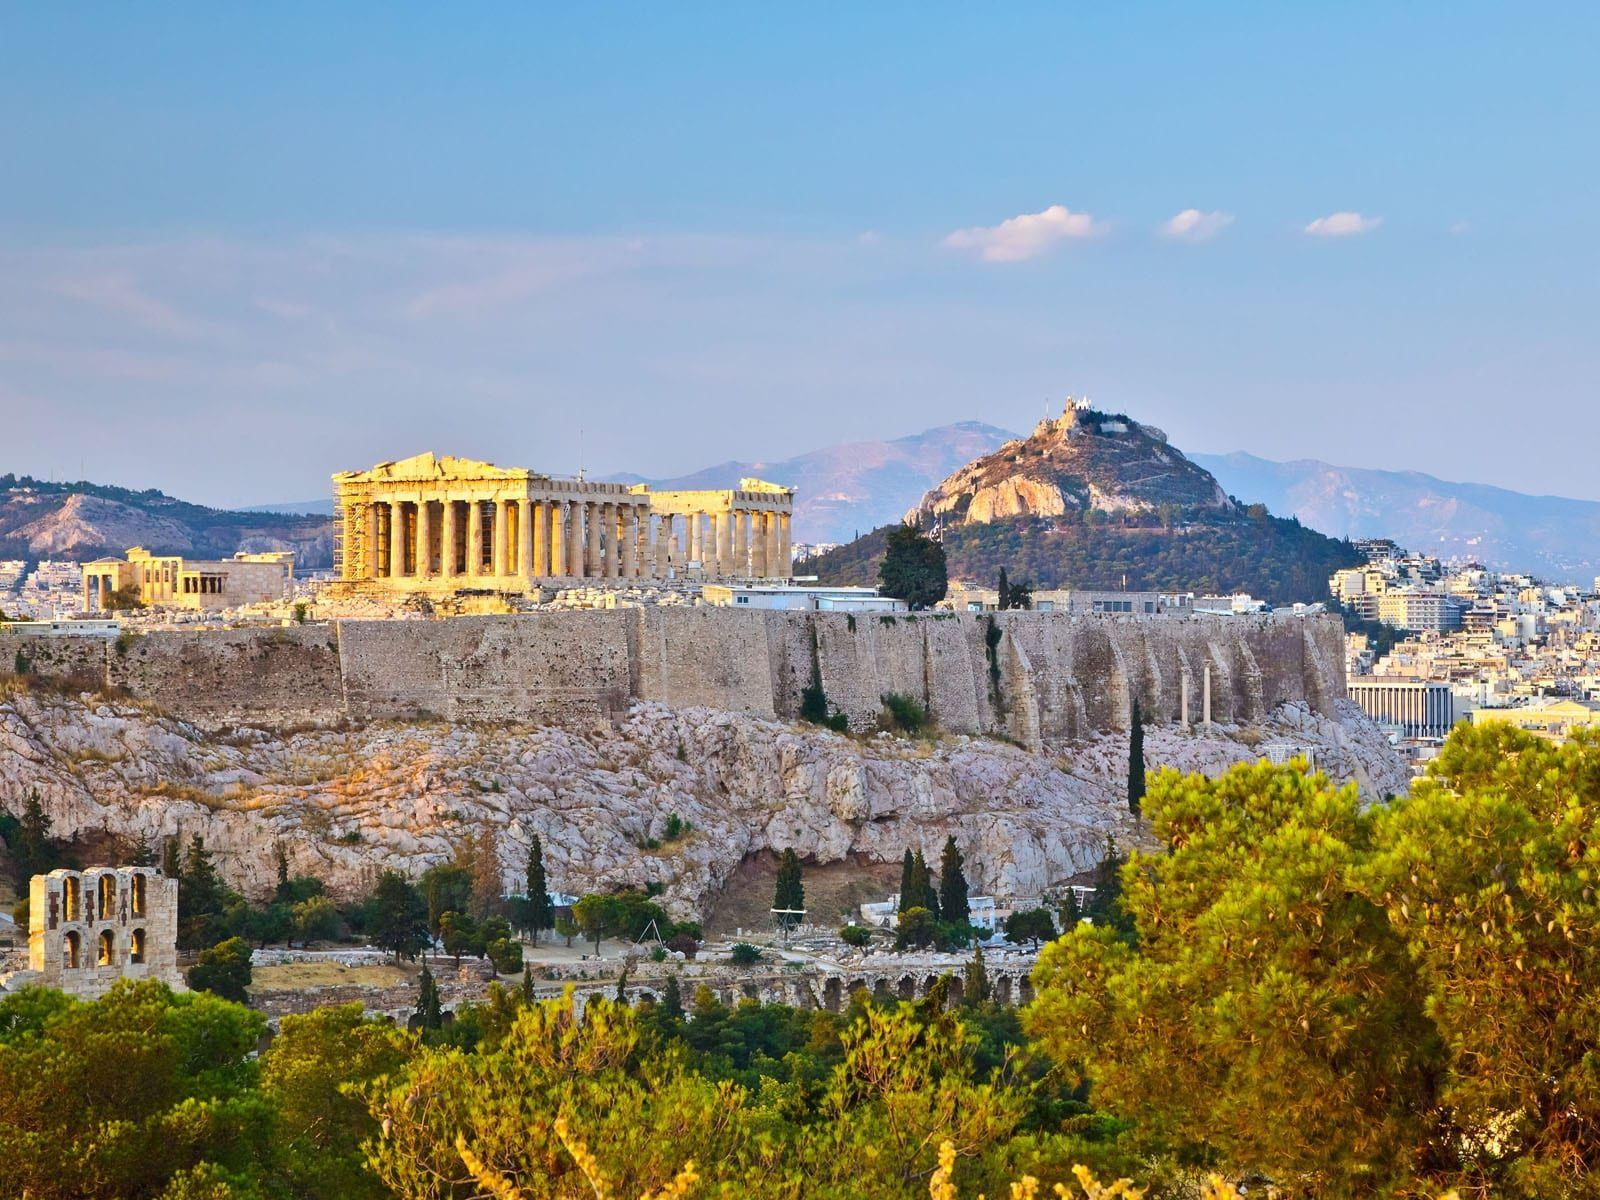 Athens HD Wallpapers | 7wallpapers.net